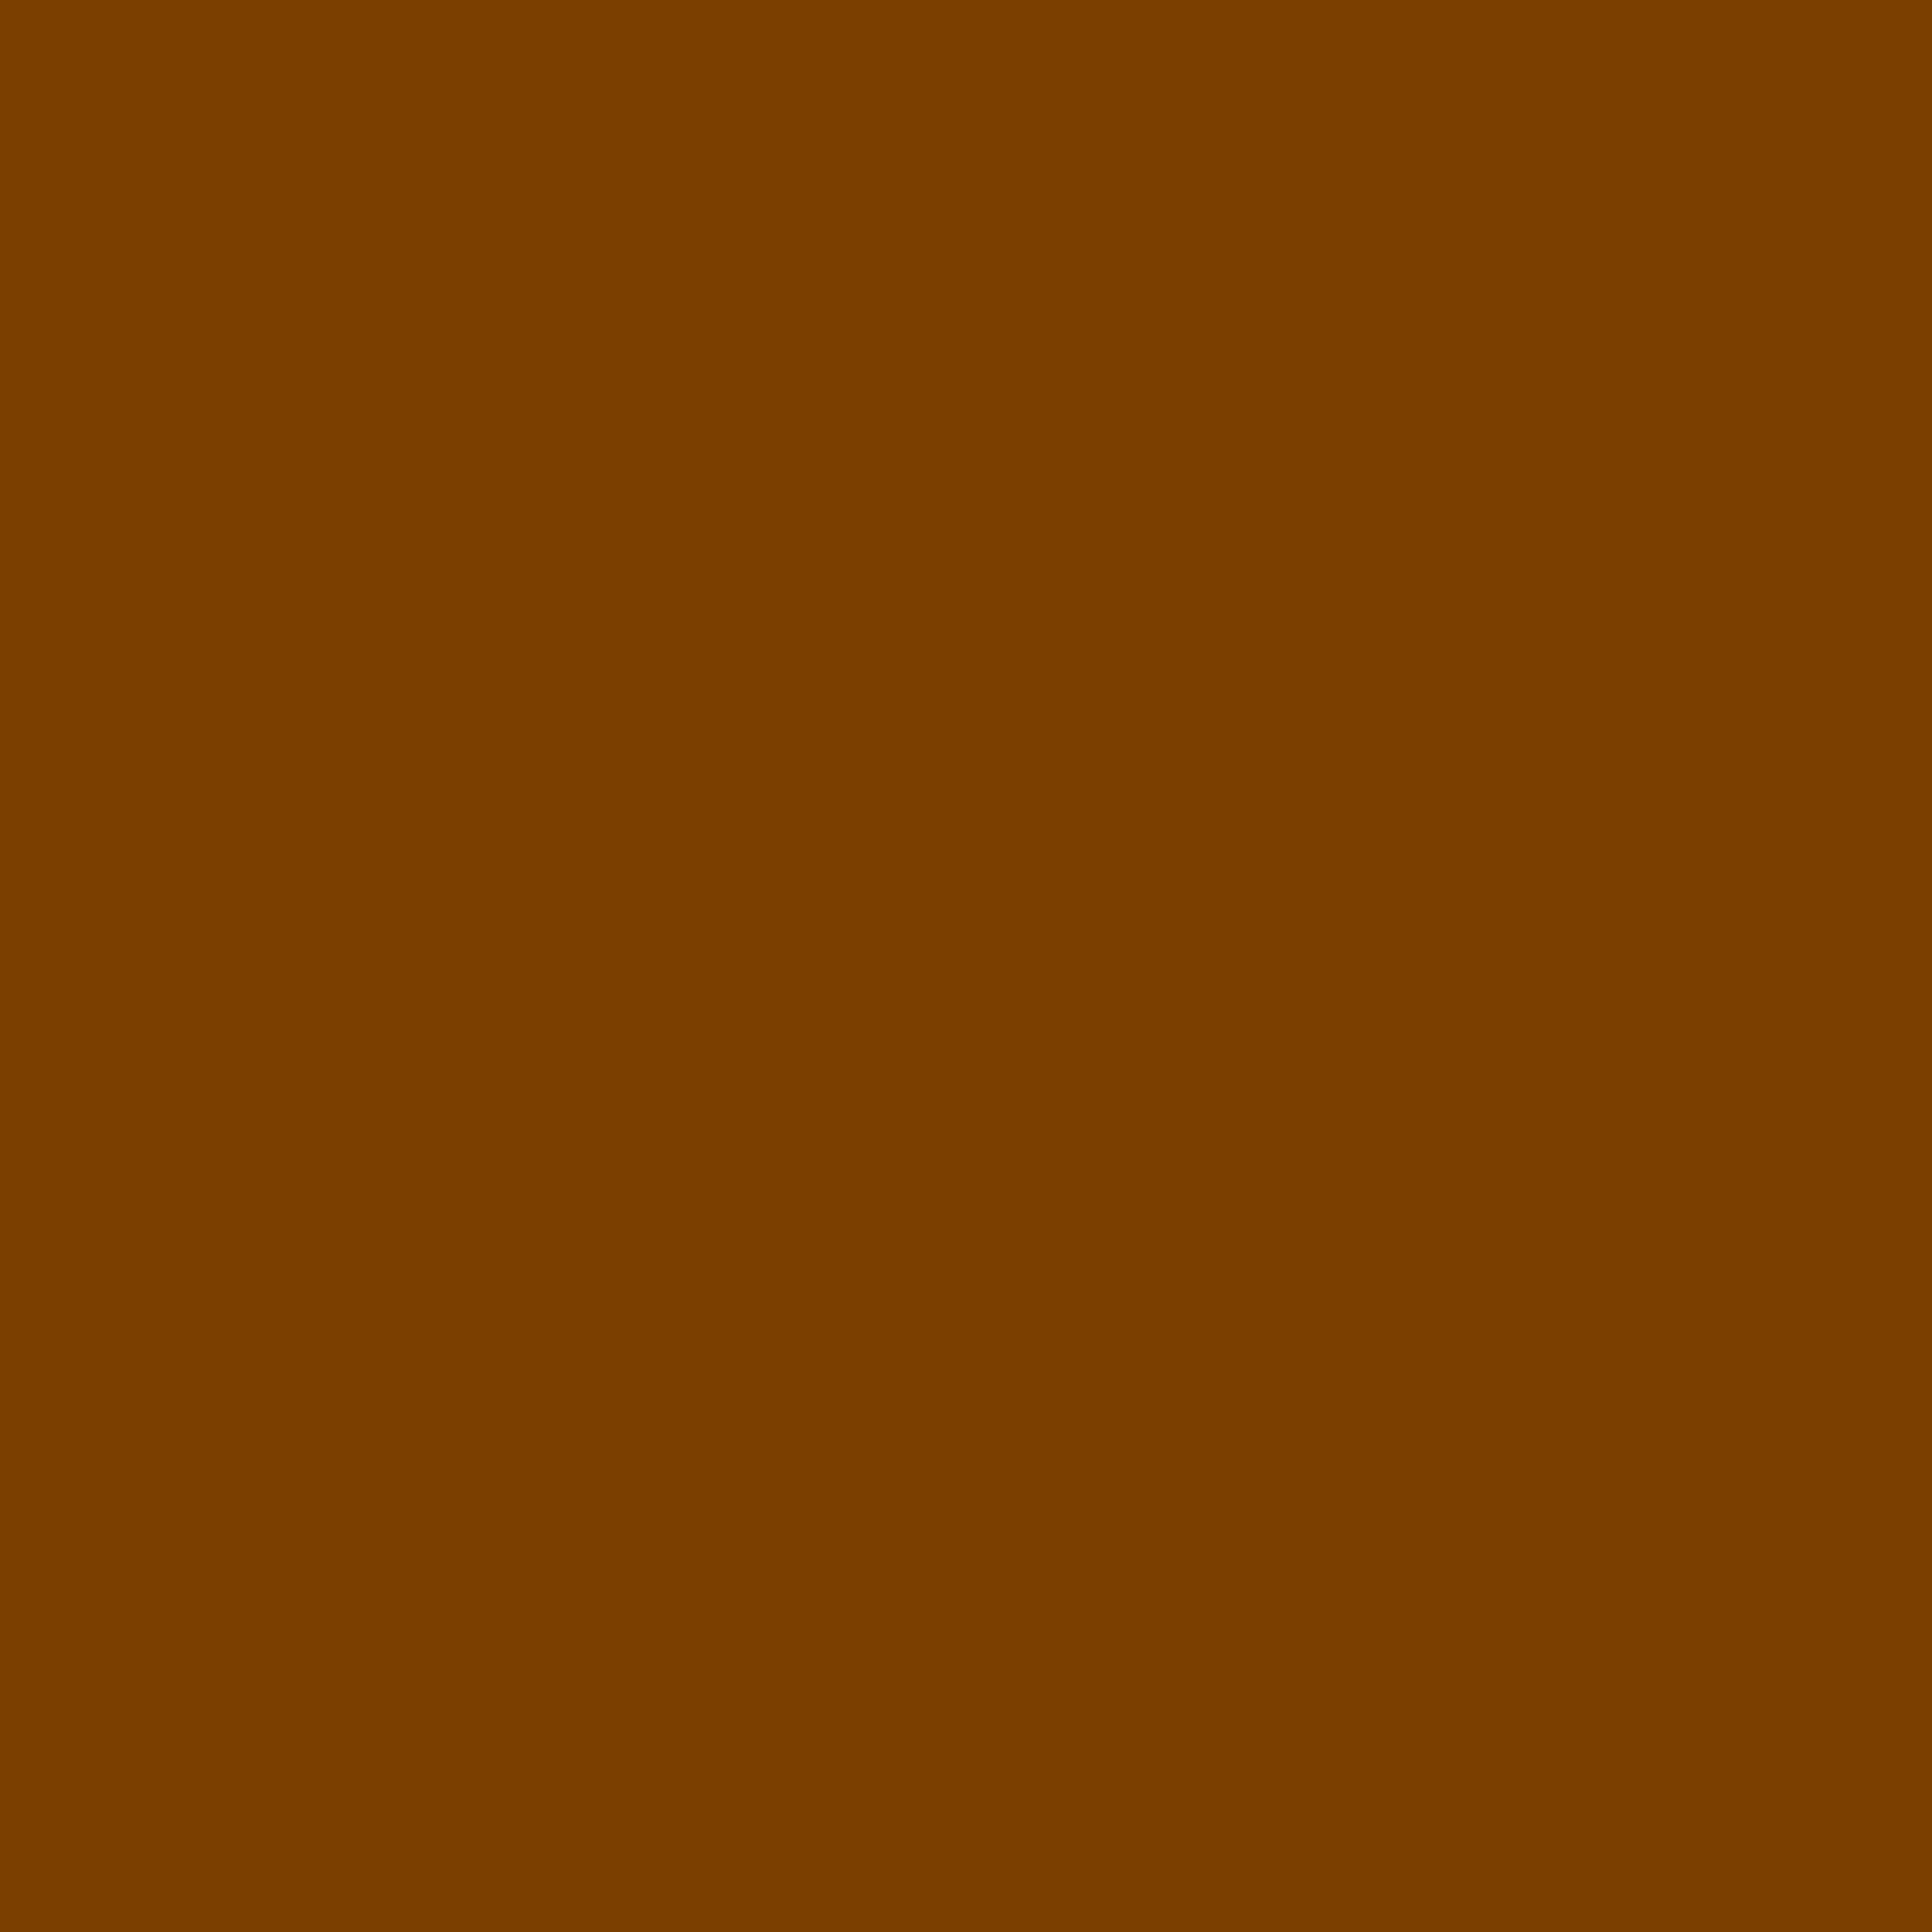 2048x2048 Chocolate Traditional Solid Color Background